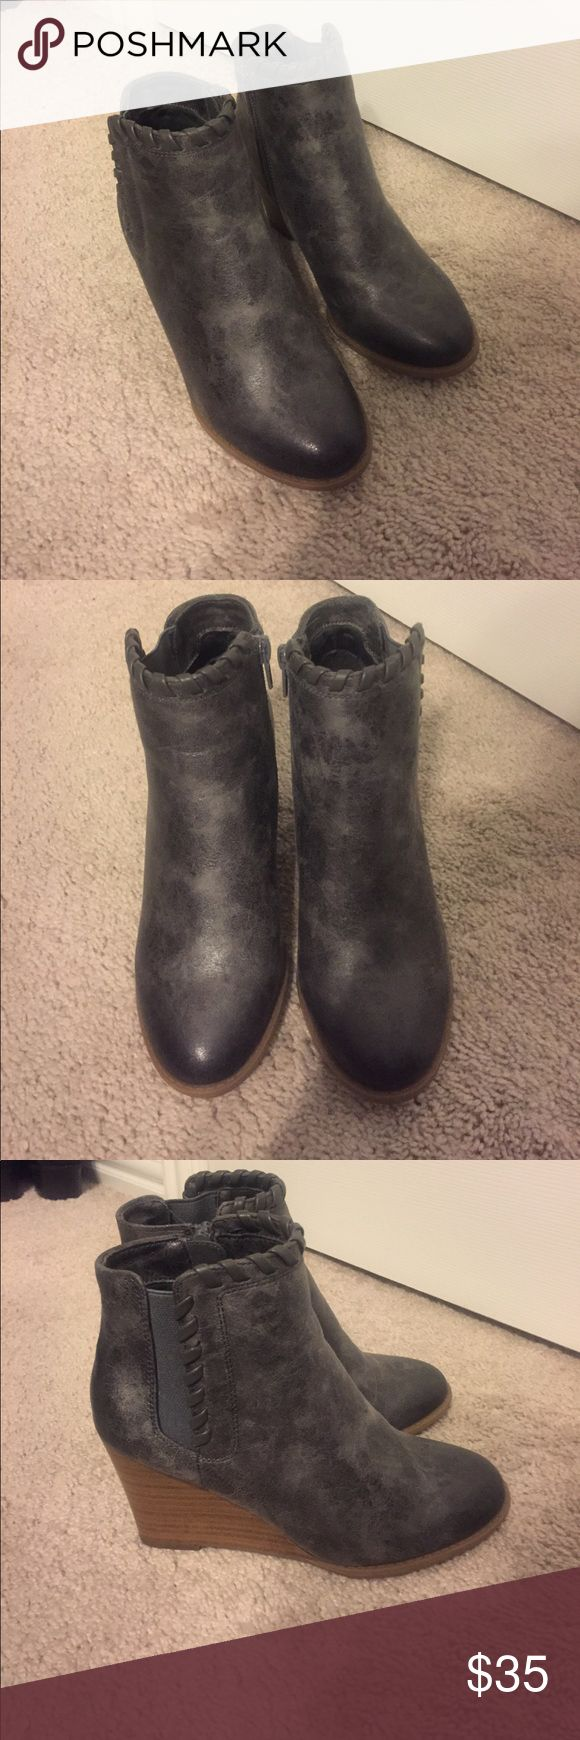 Grey Booties from Maurices! Grey Booties from Maurices! Only worn once and in amazing condition! Maurices Shoes Ankle Boots & Booties